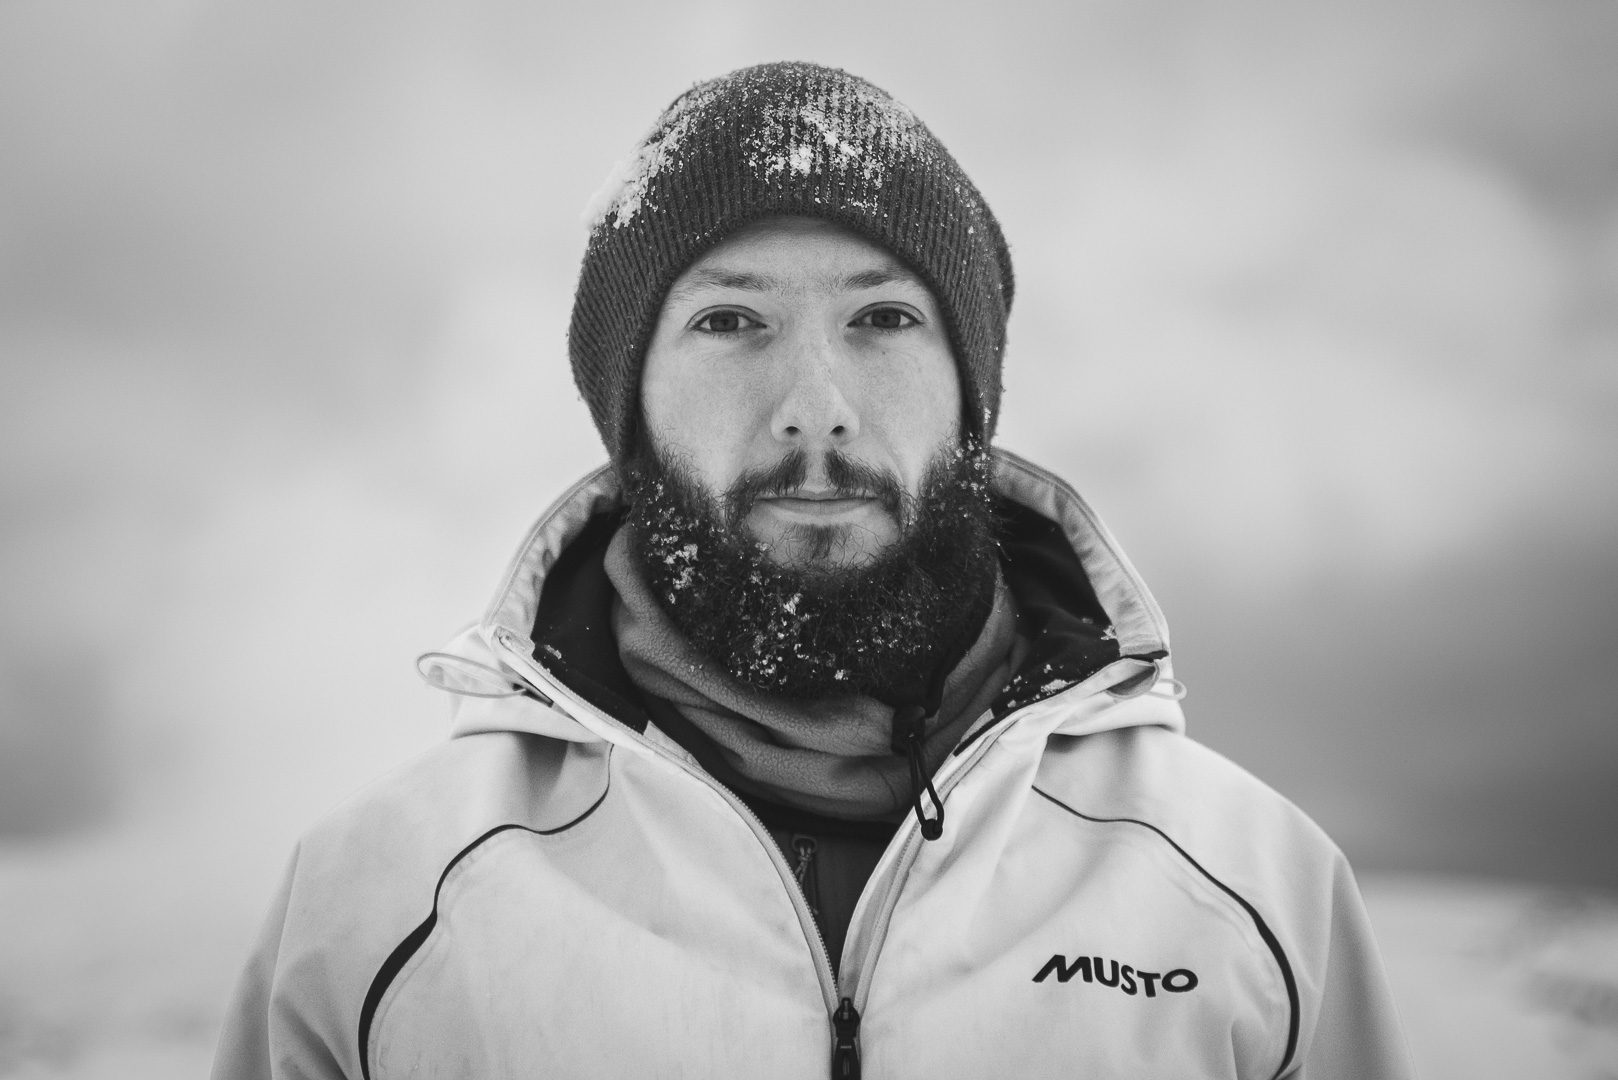 Profile Pic for Irish Photographer Colm Keating